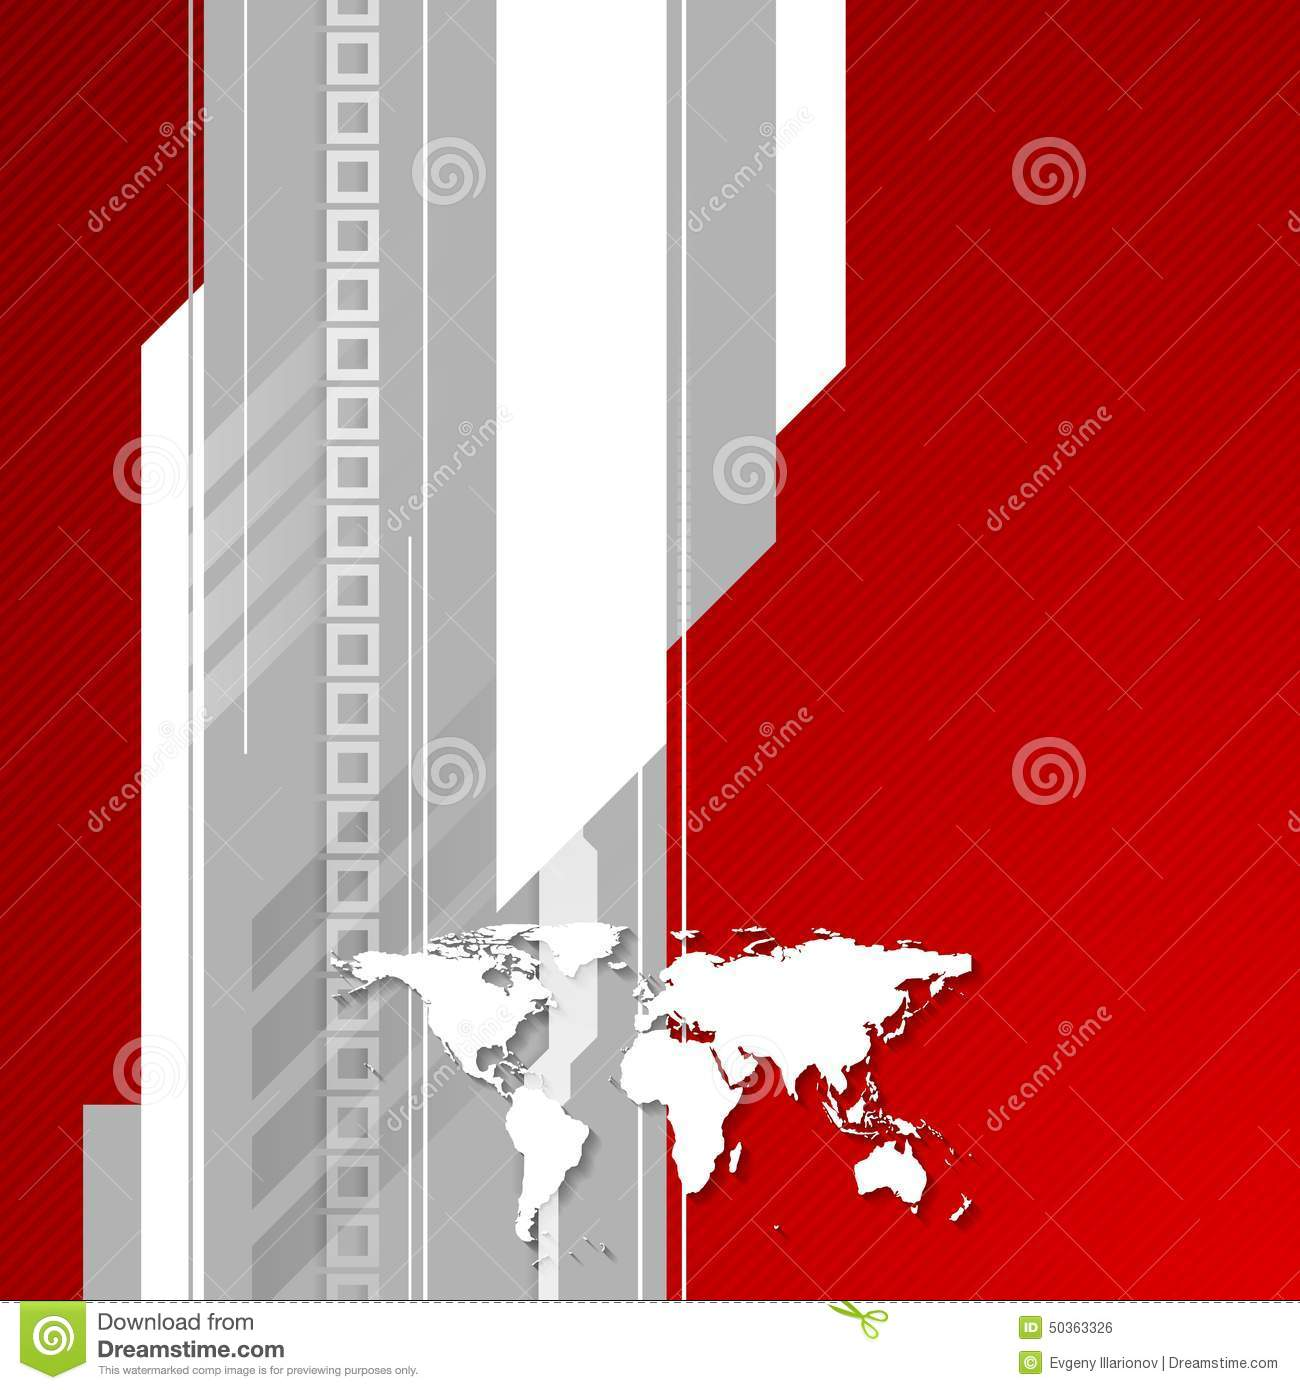 Red and grey technology background with world map stock vector download red and grey technology background with world map stock vector illustration of line gumiabroncs Images